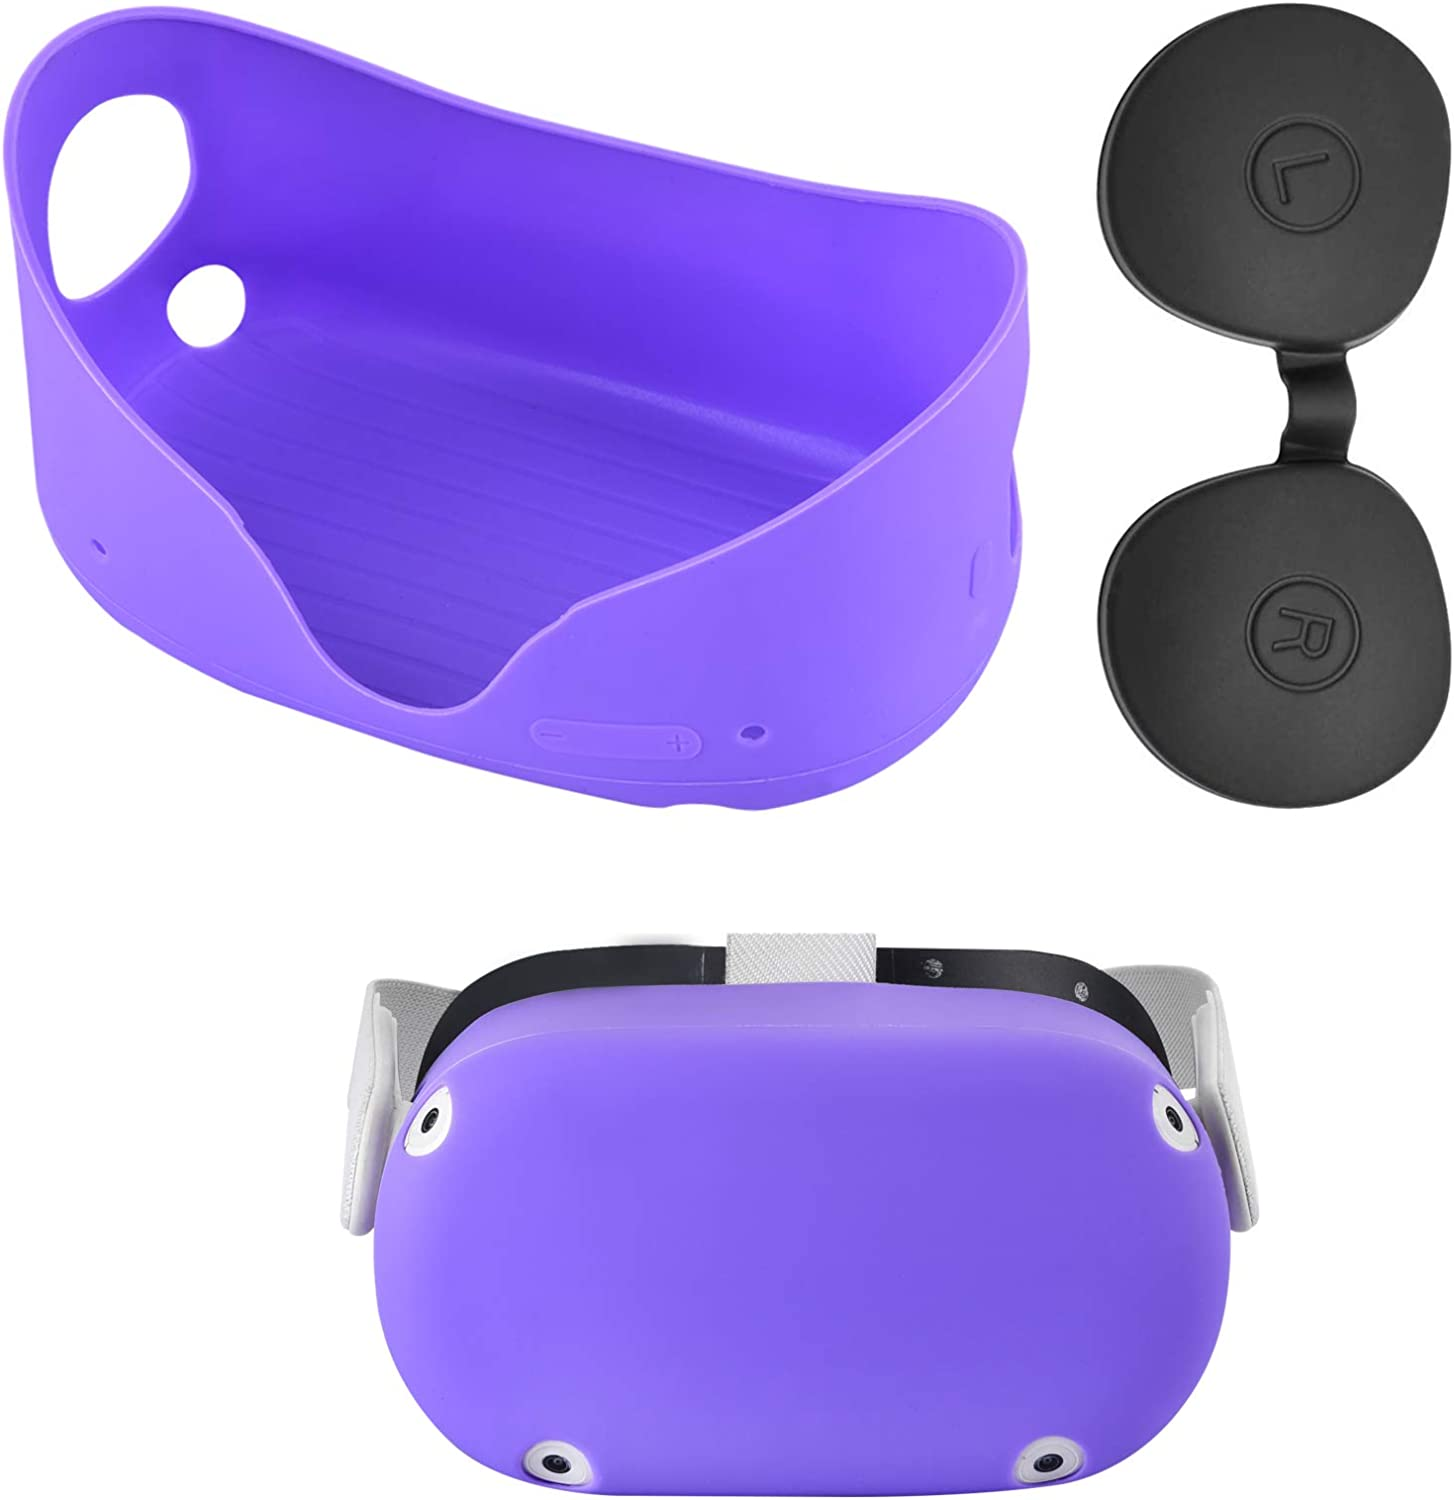 XIAOGE Silicone Front Protector Cover for Oculus Quest 2 with Black Lens Cover Accessories Dust Proof Washable Oculus Quest 2 Silicone Protector Shell (Purple)